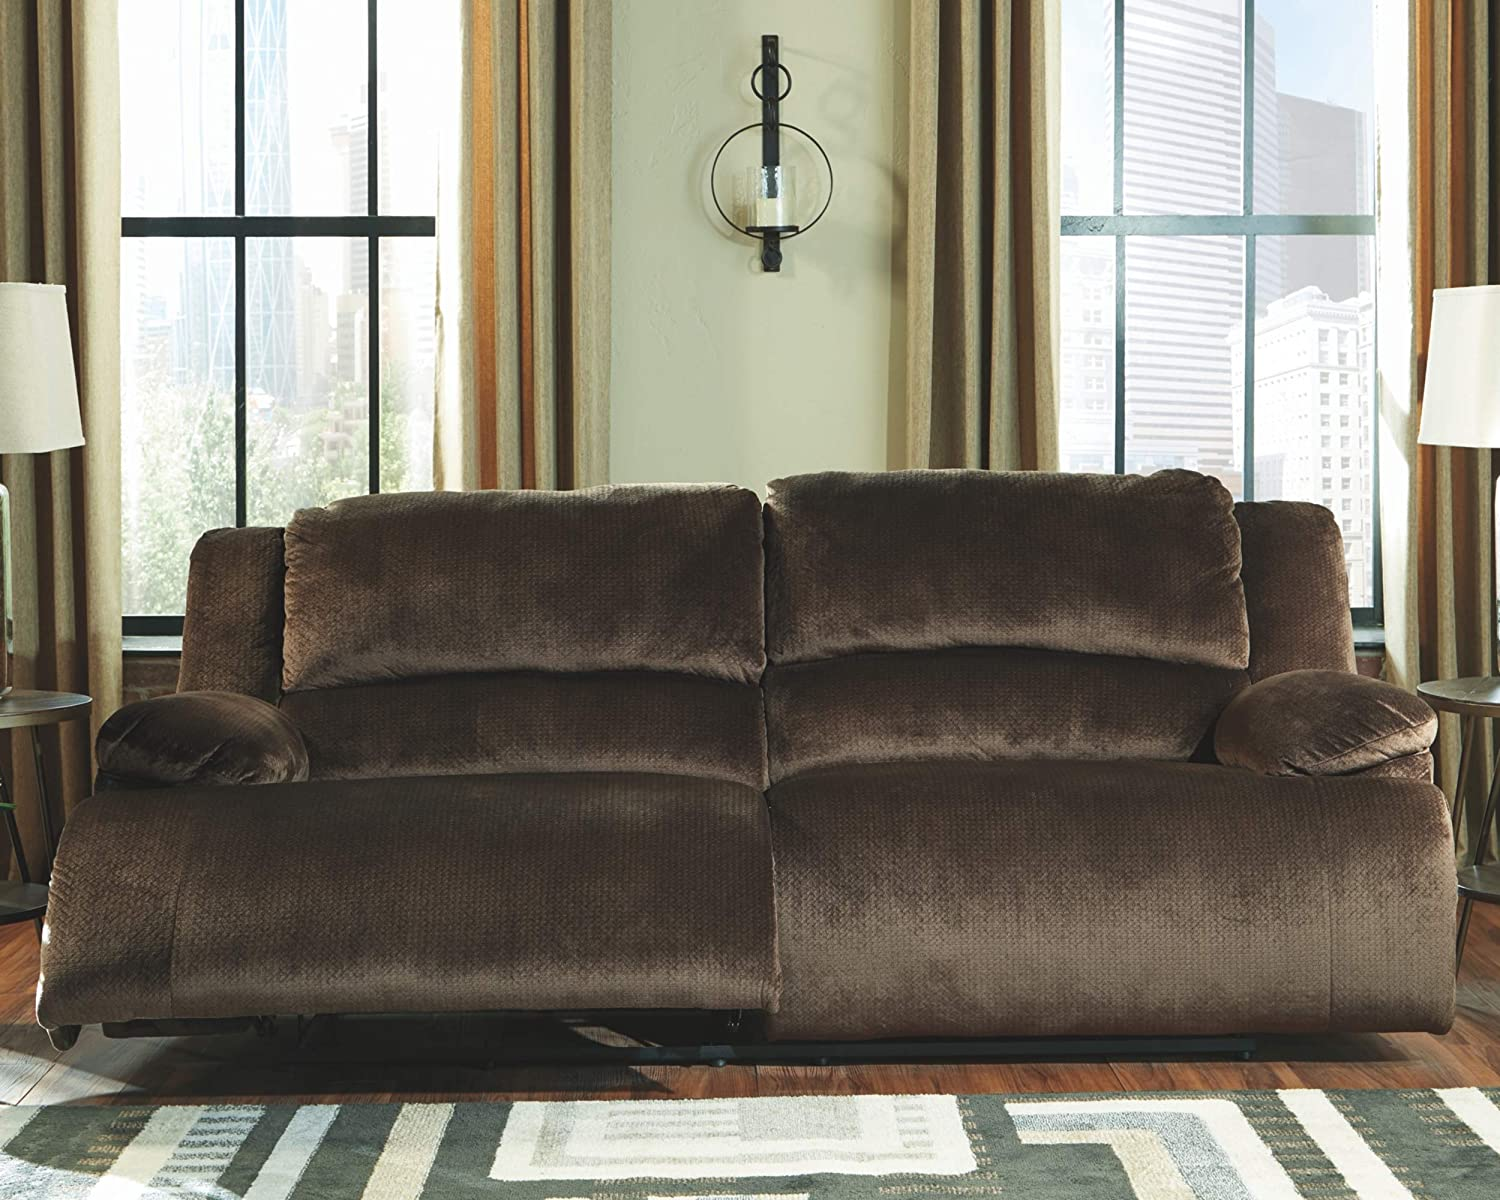 Signature Design by Ashley Clonmel 2-Seat Reclining Sofa Chocolate